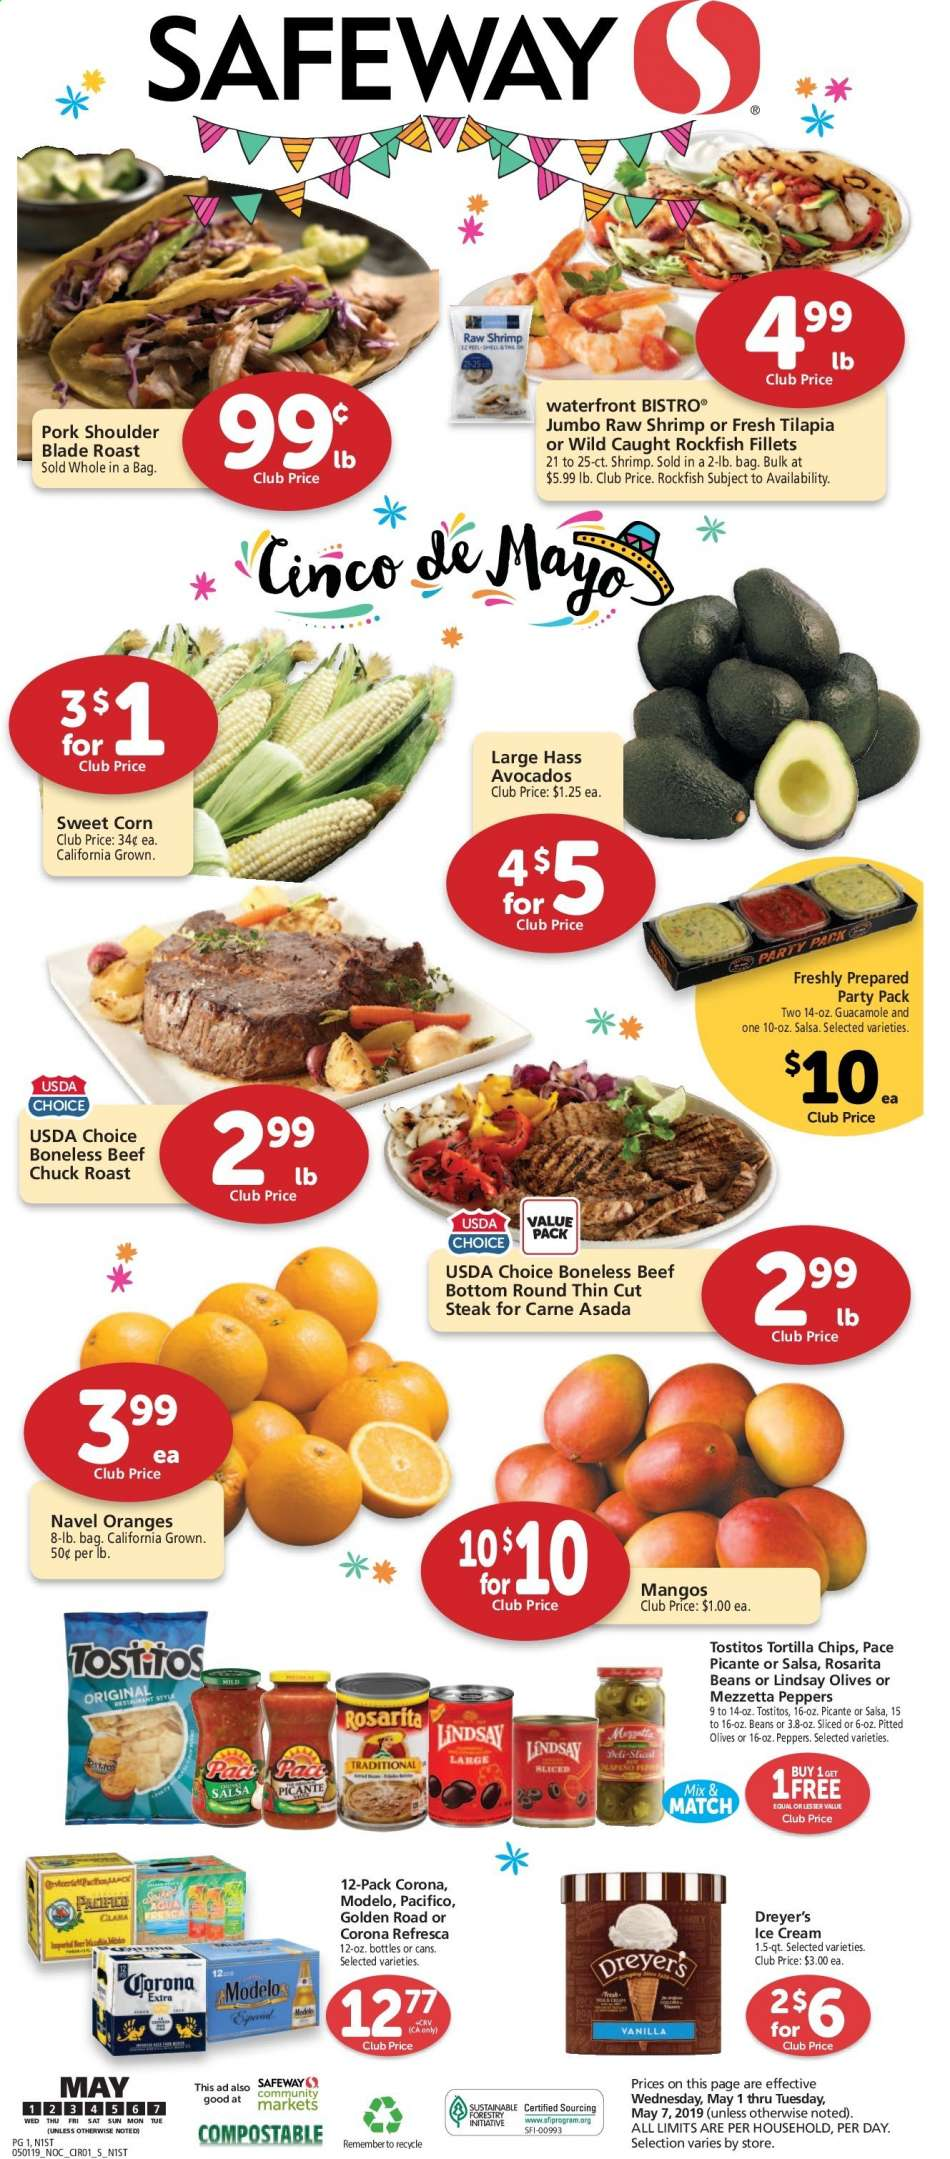 Safeway flyer 05 01 2019 - 05 07 2019 | Weekly-ads us